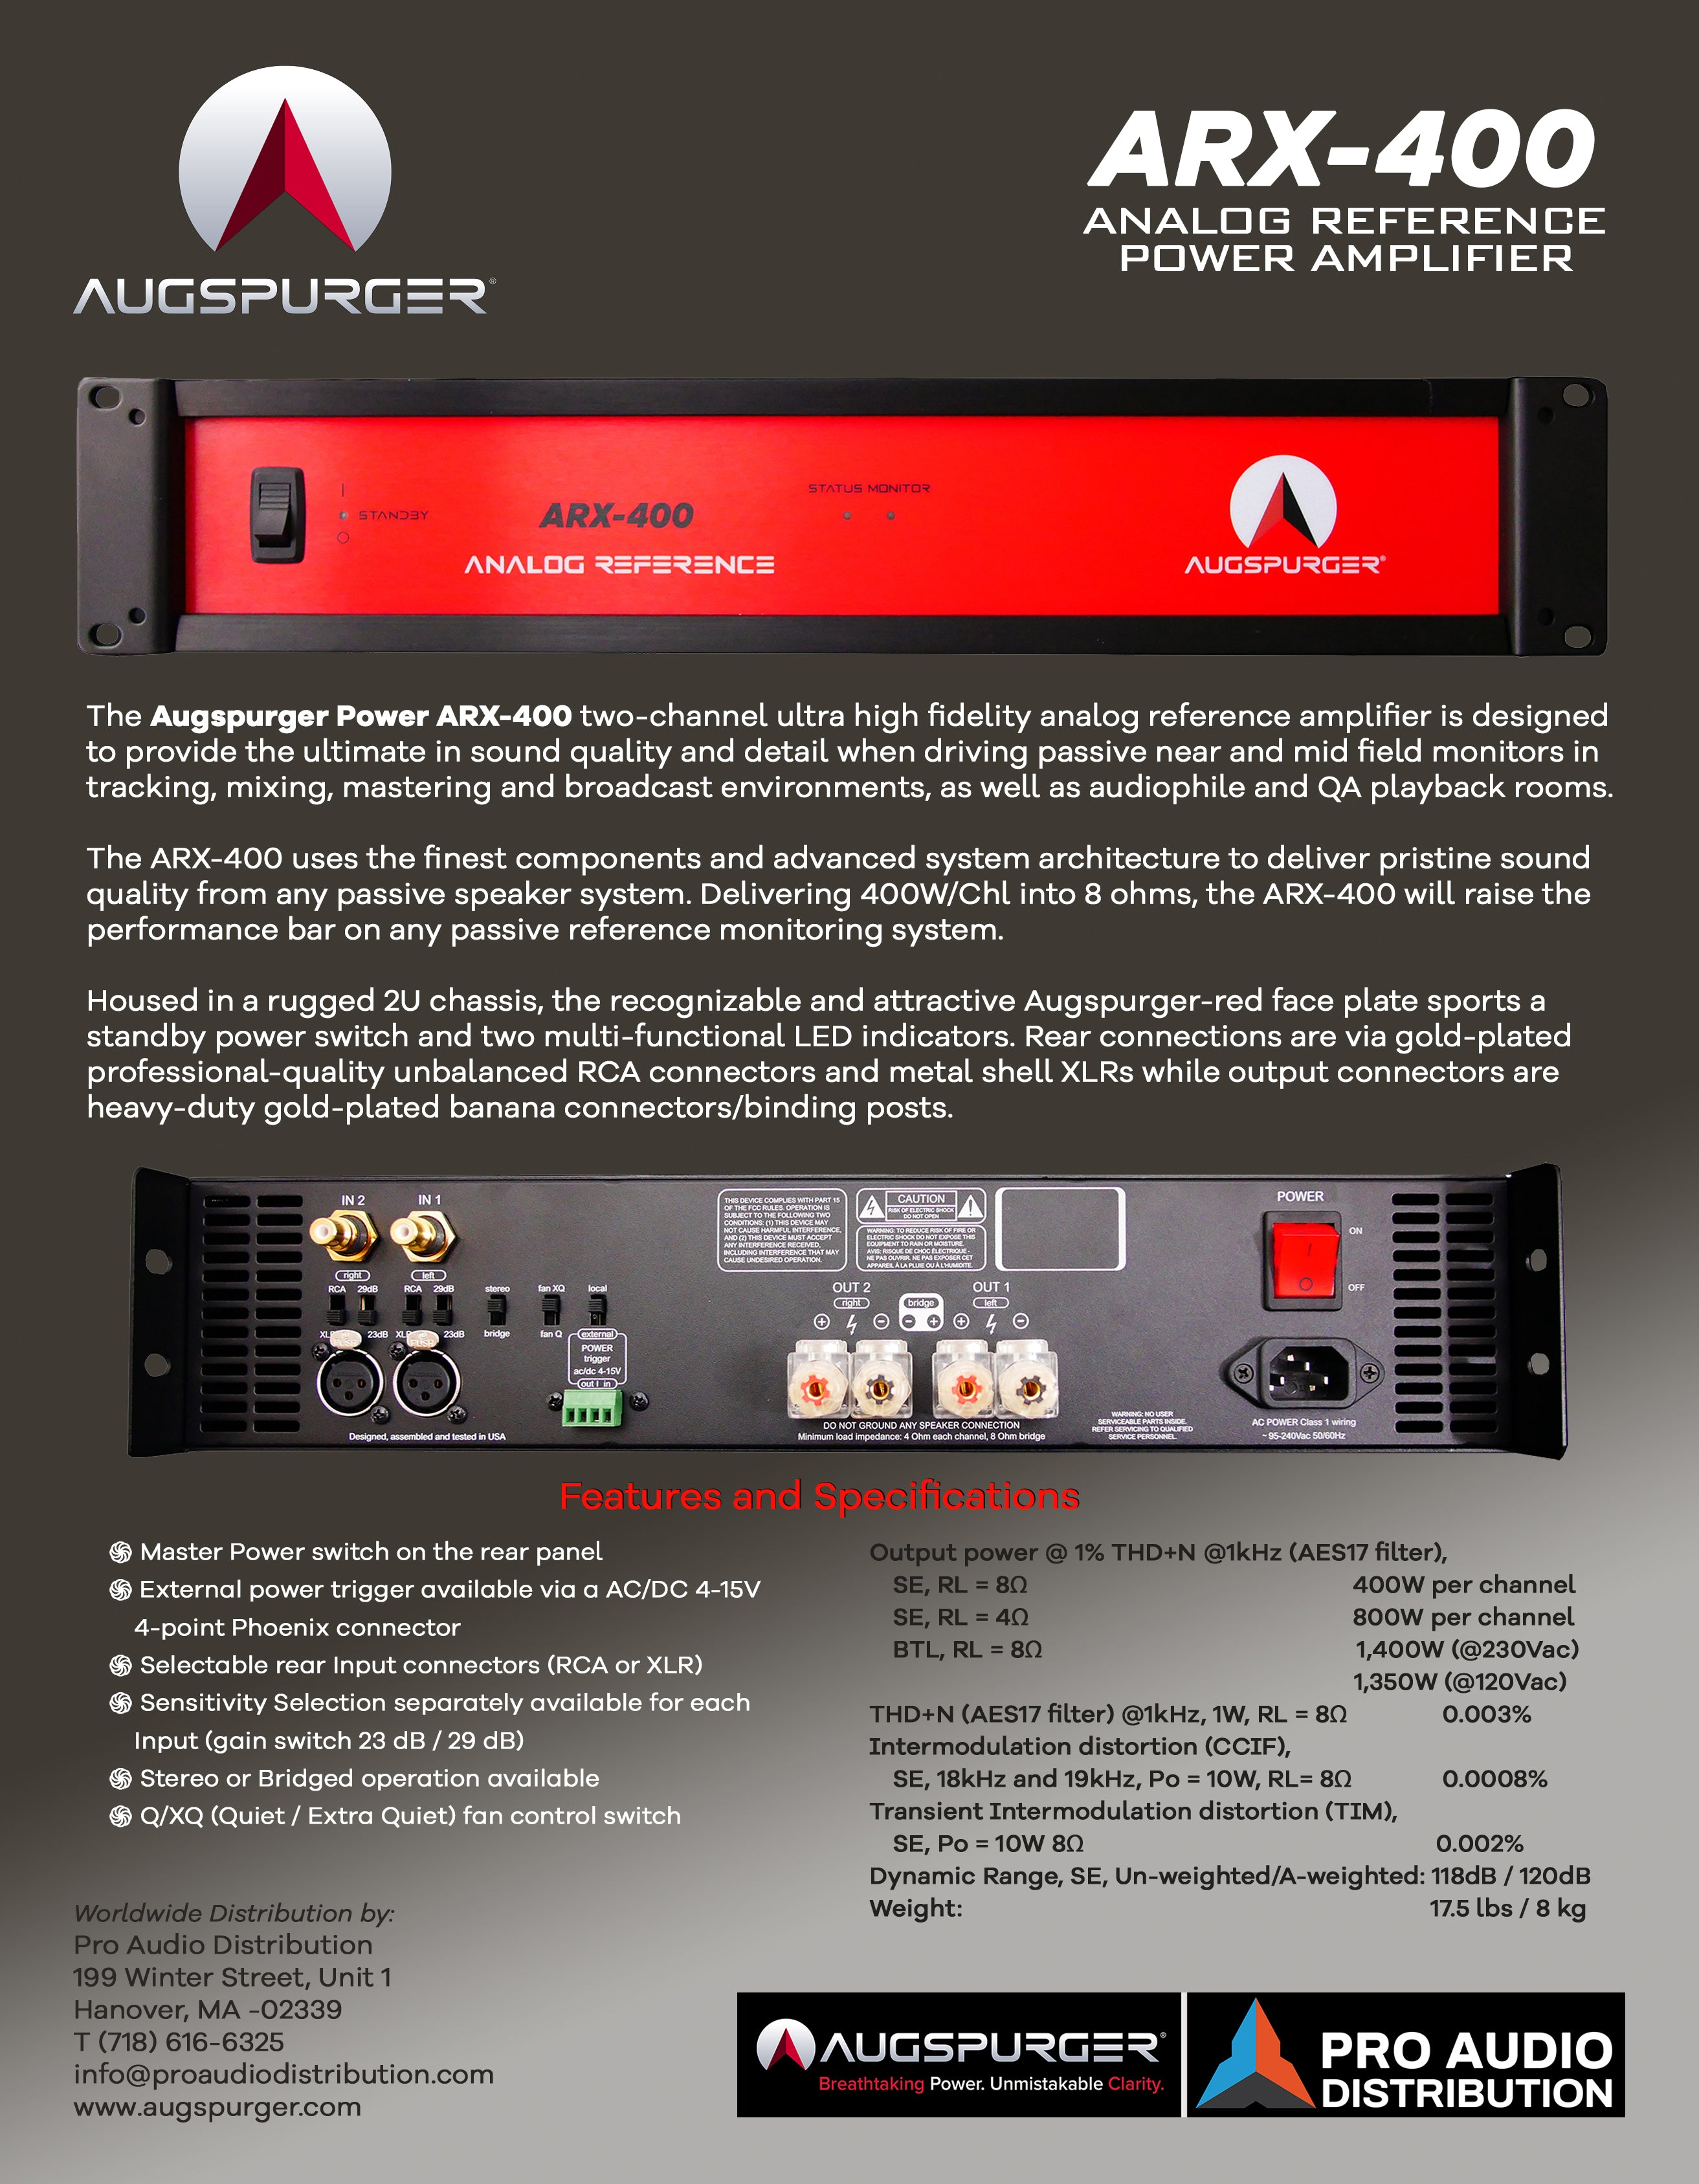 Augspurger Professional Audio Design Inc